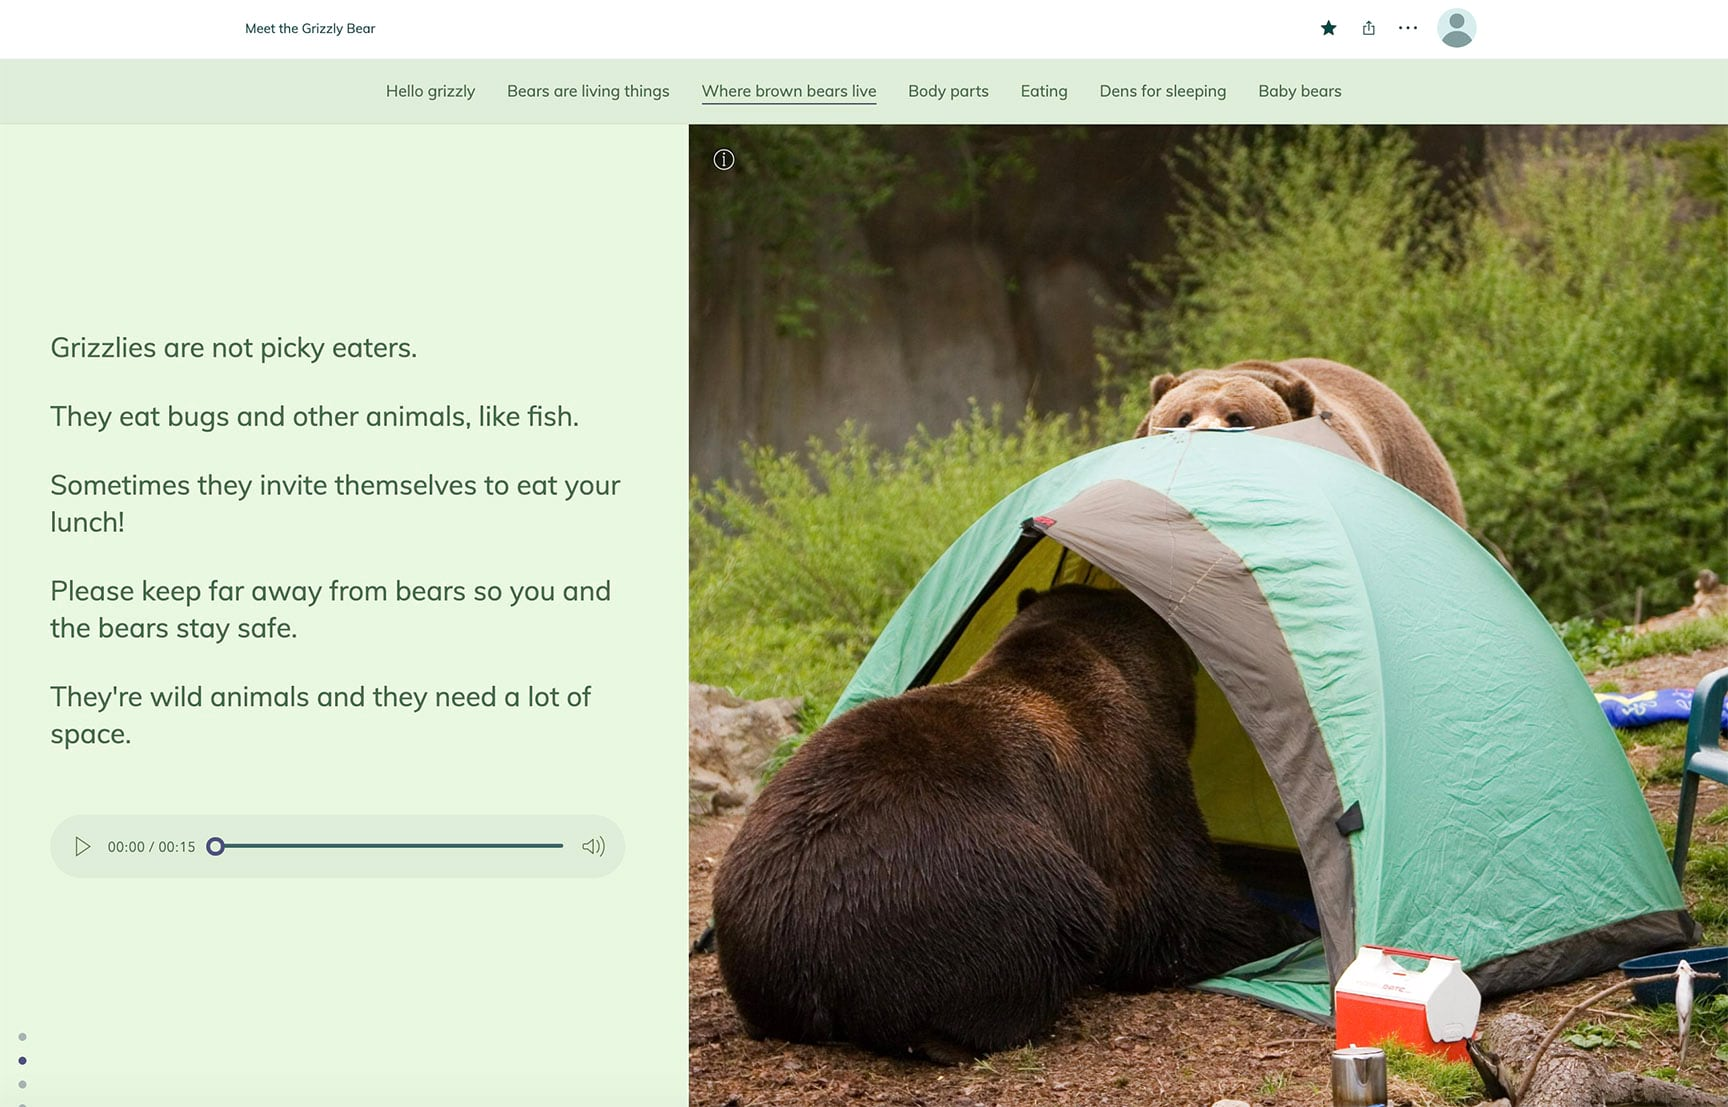 Two brown bears raid a campsite crawl into a tent and help themselves to a meal